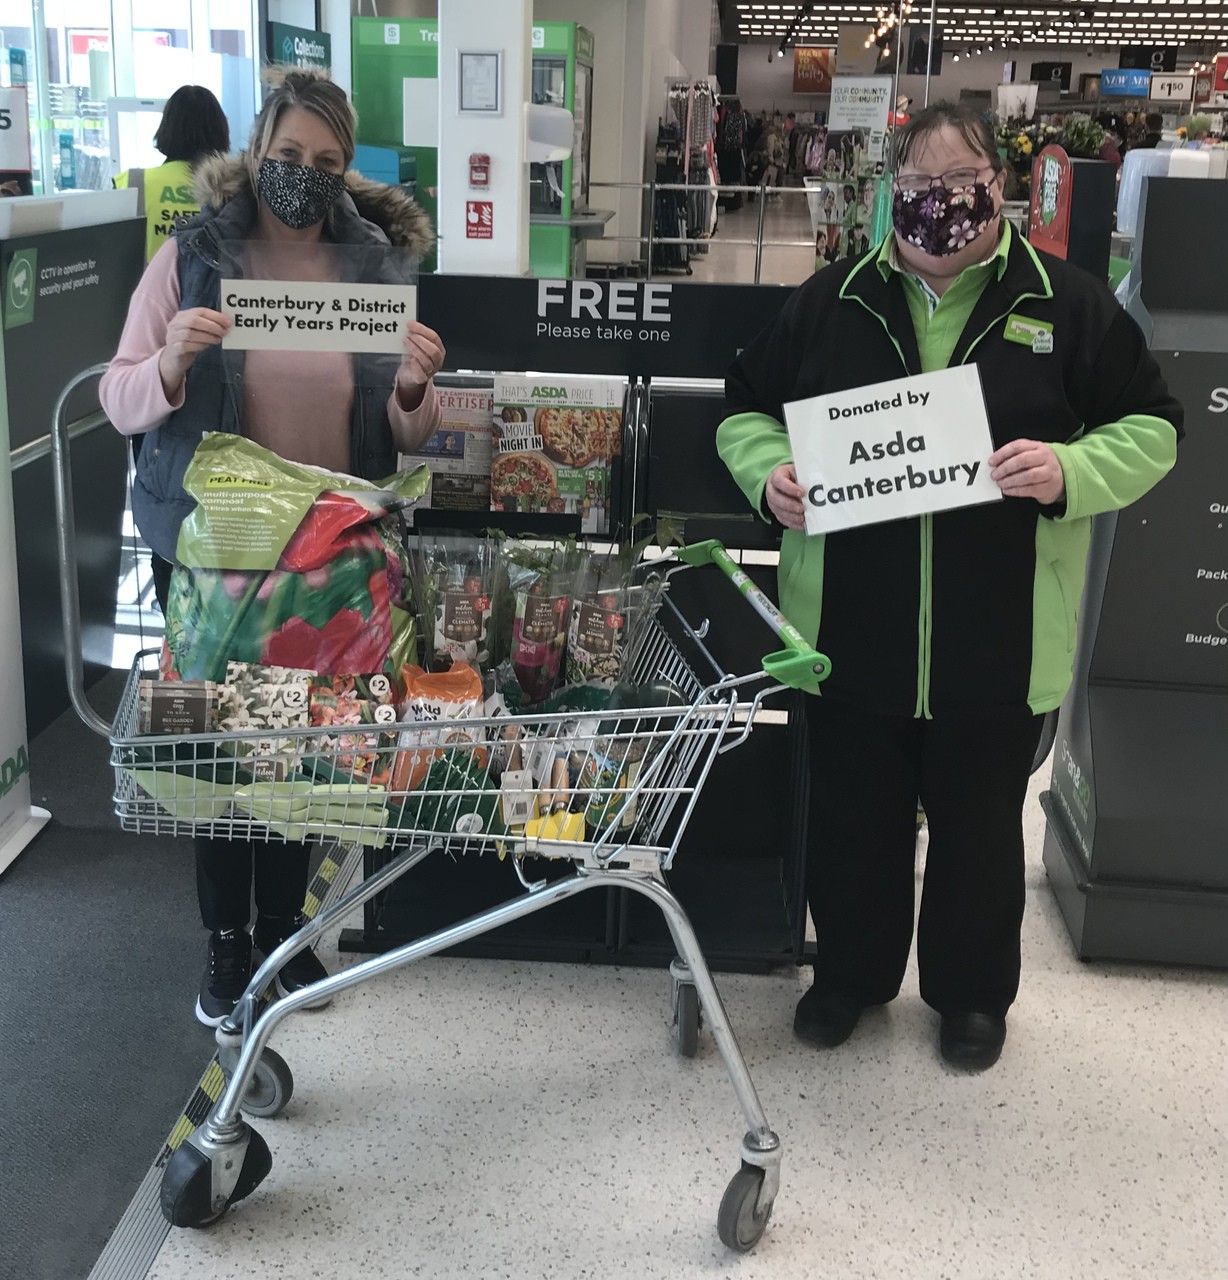 Asda Canterbury supporting local charity readying to welcome back the local community to their community garden. | Asda Canterbury